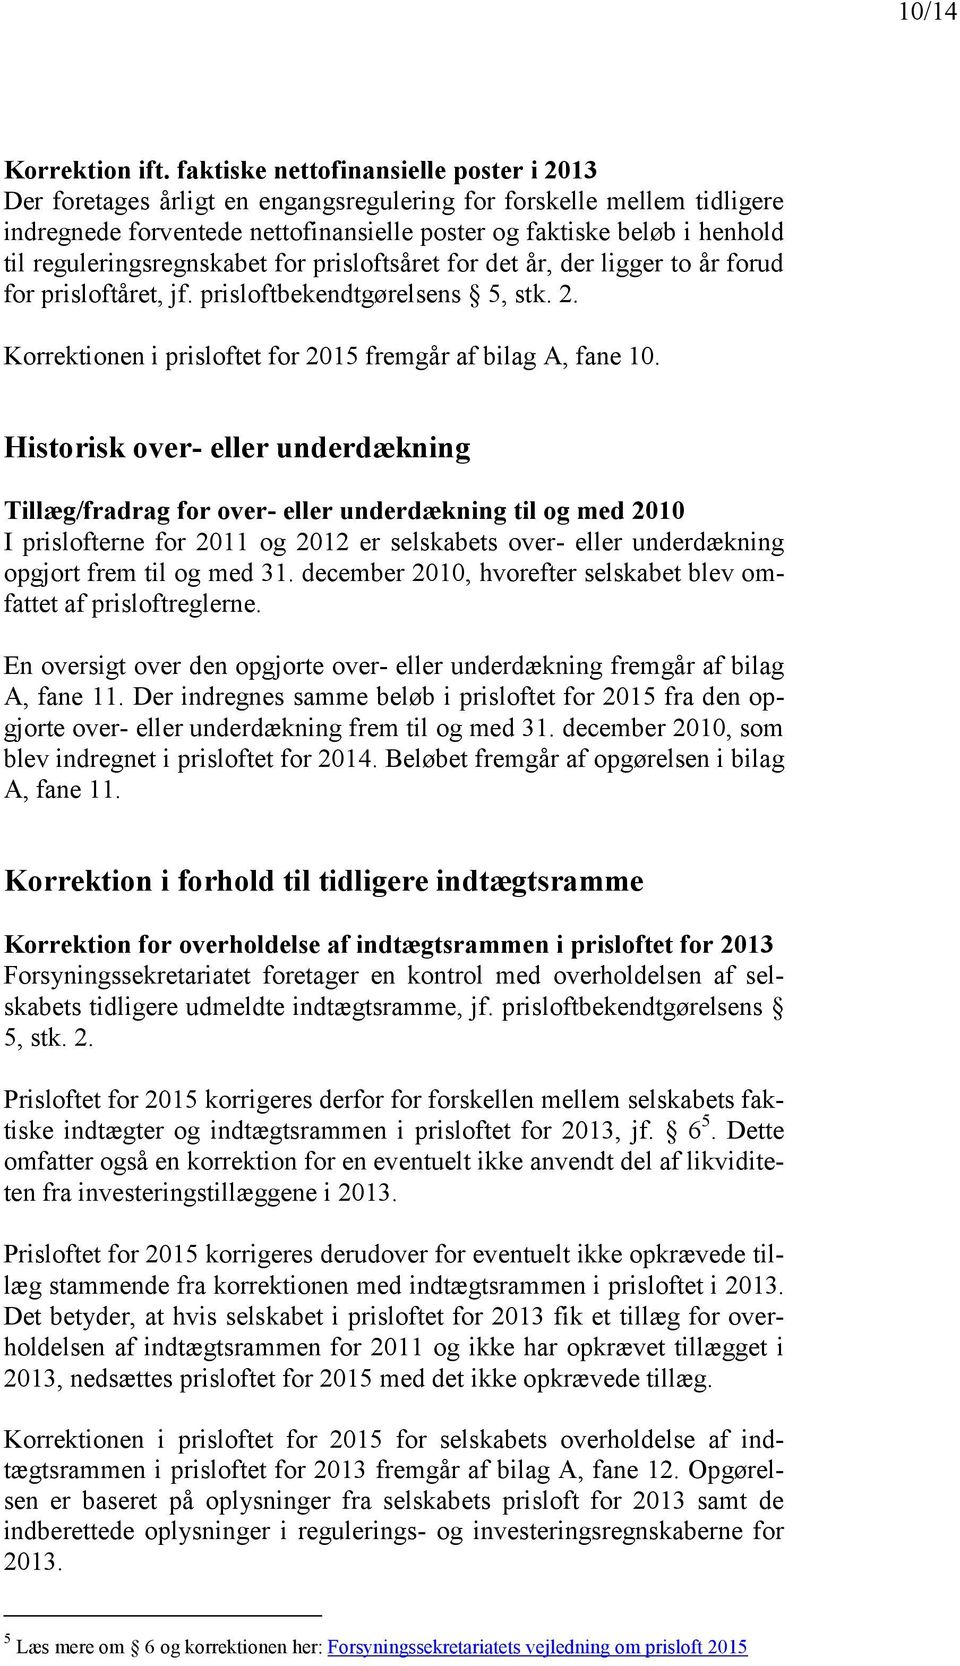 reguleringsregnskabet for prisloftsåret for det år, der ligger to år forud for prisloftåret, jf. prisloftbekendtgørelsens 5, stk. 2. Korrektionen i prisloftet for 2015 fremgår af bilag A, fane 10.